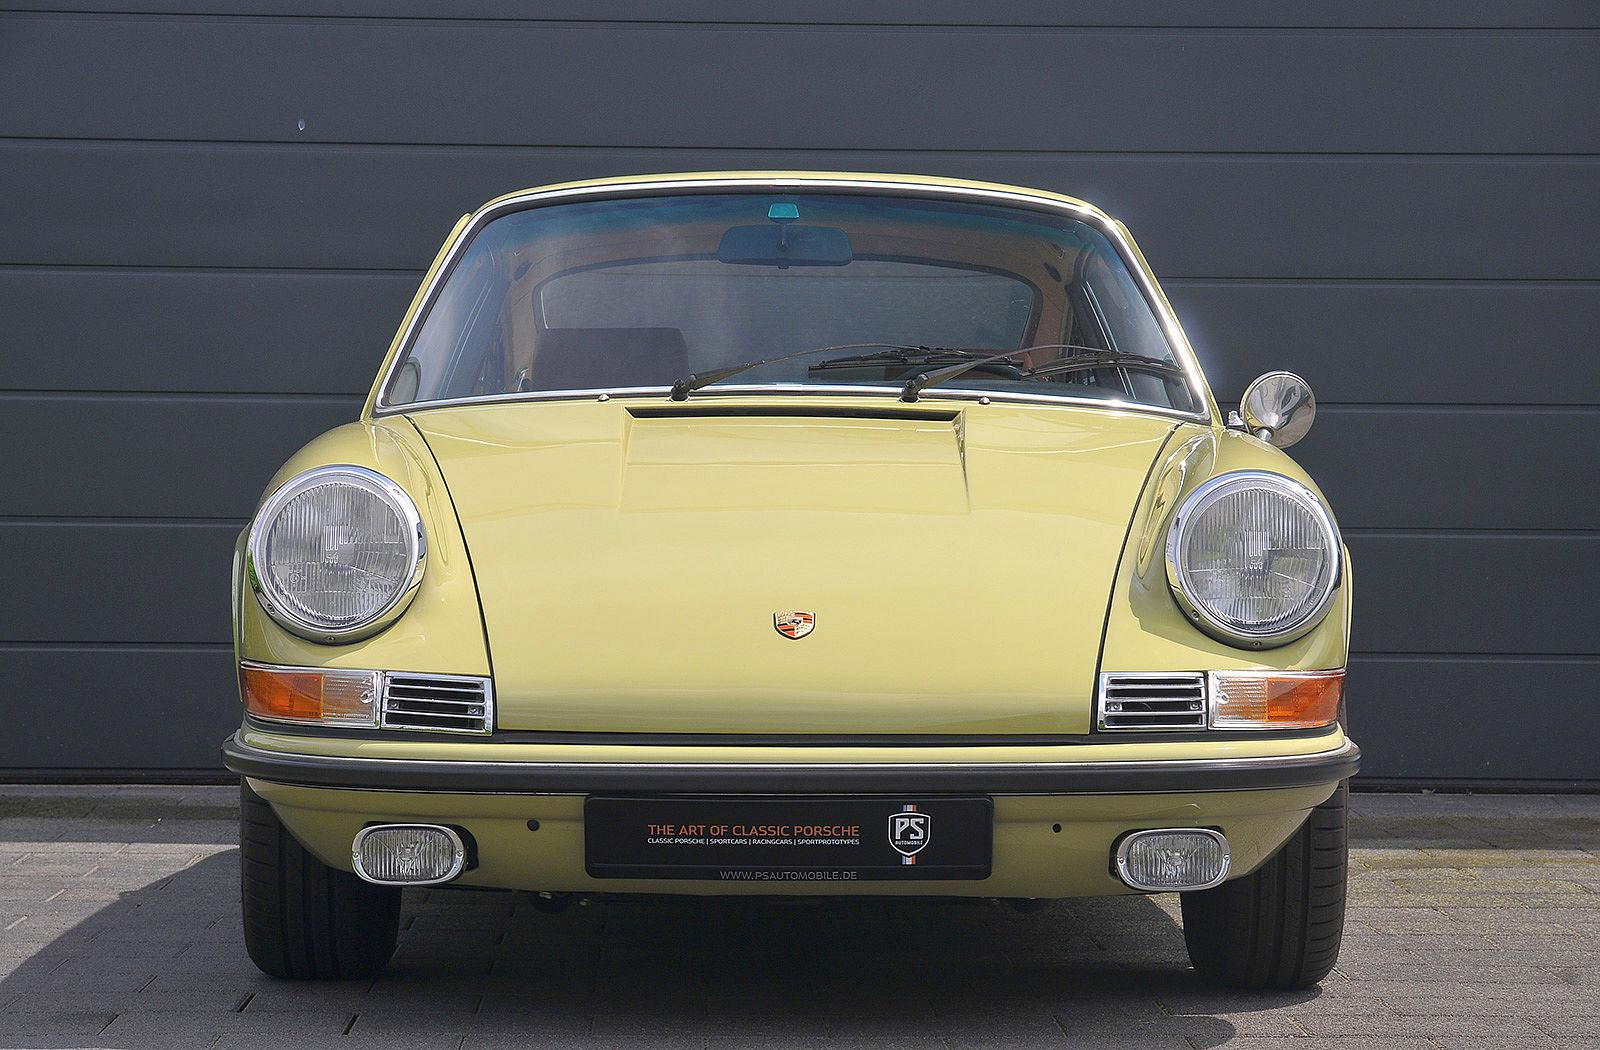 PS Automobile Porsche 911 2.0 S Coupe Gelb 09